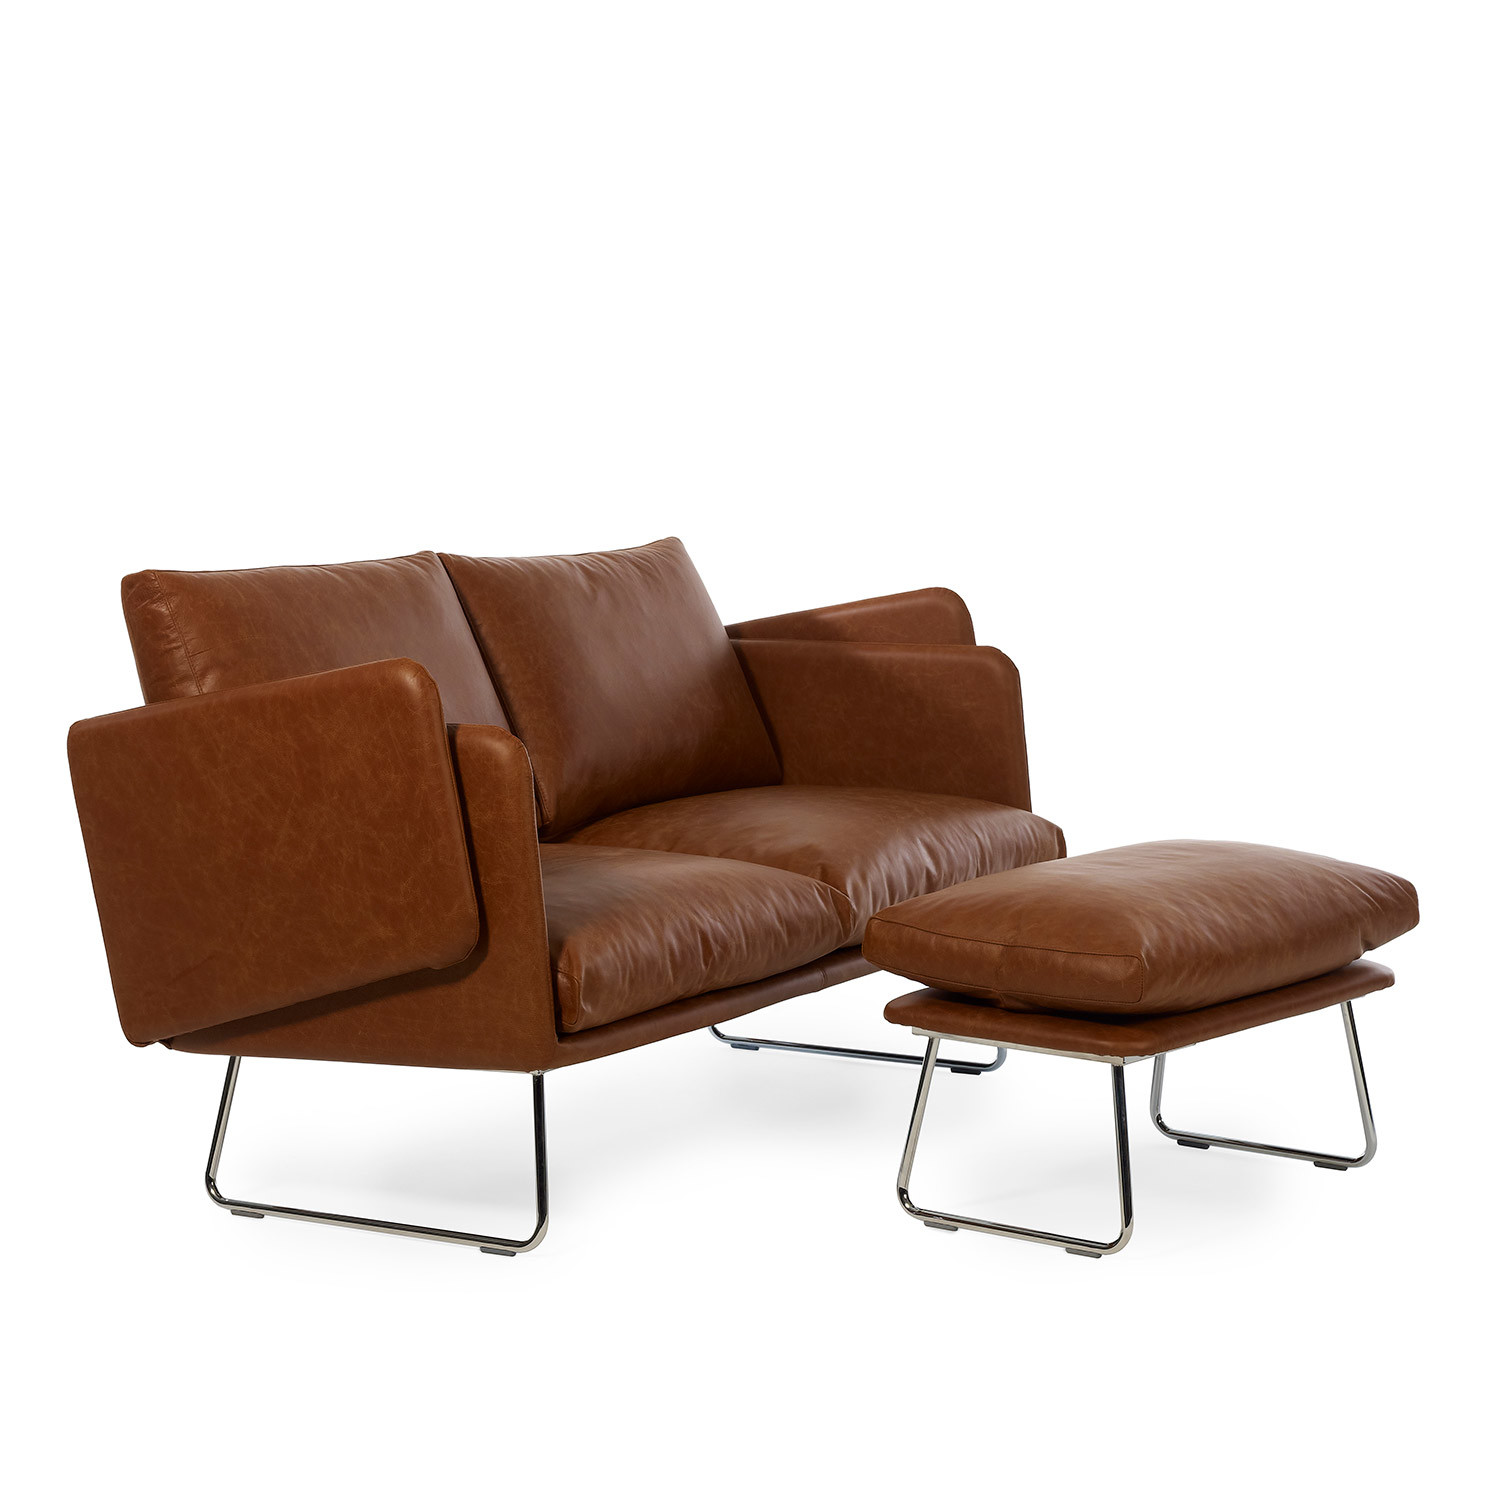 Spongy Leather Sofa Rs Barcelona Touch Of Modern